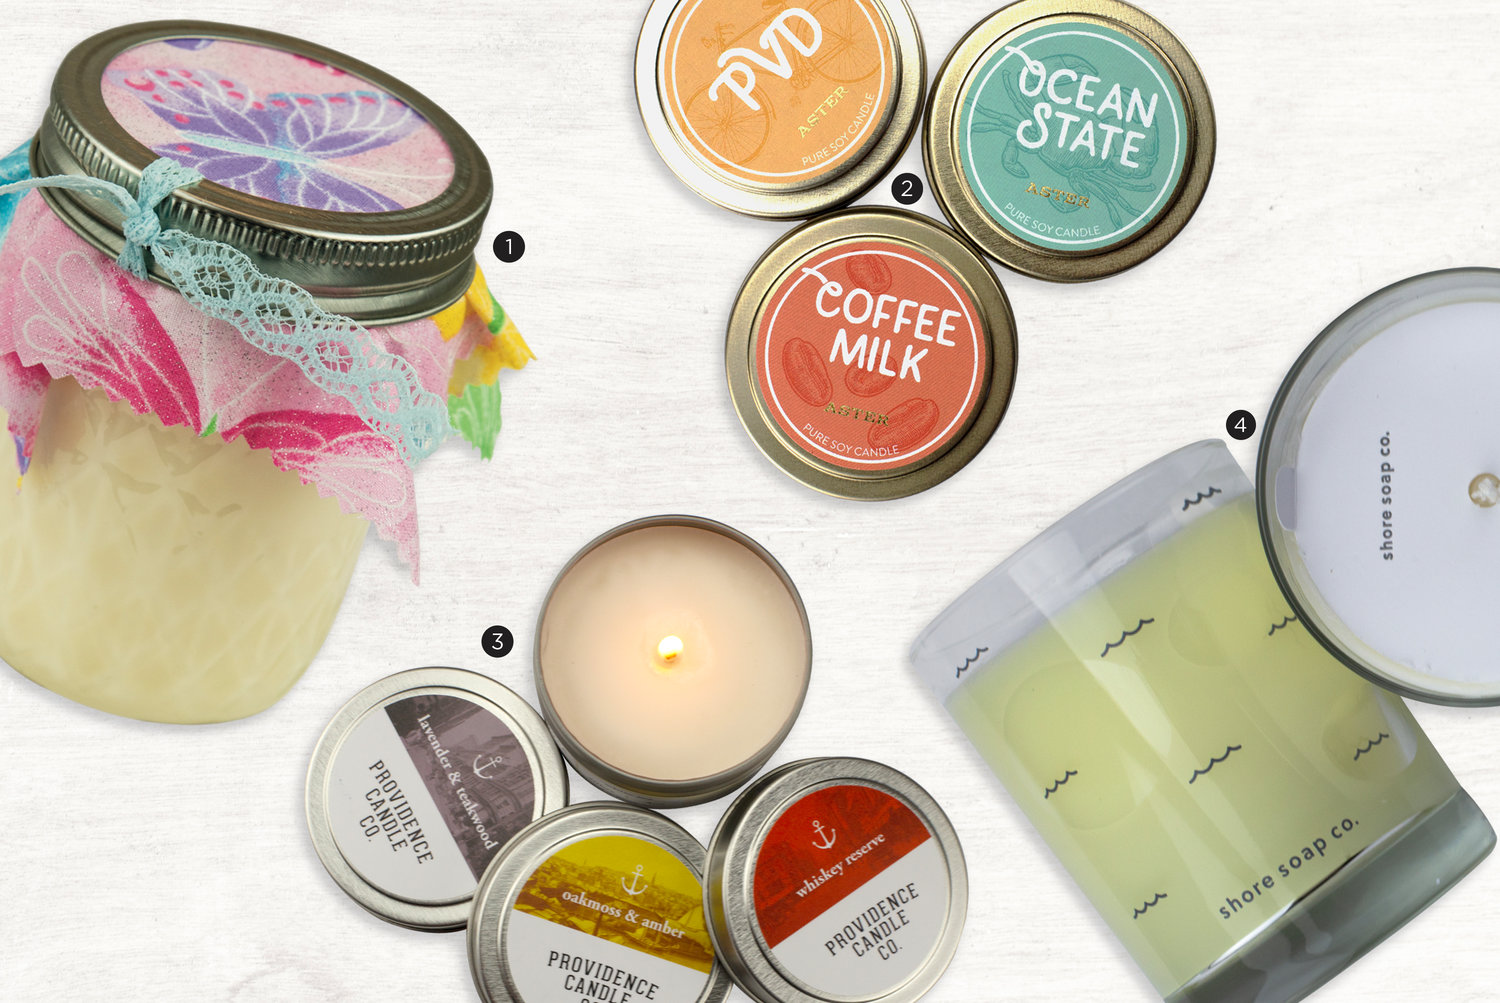 1) Naturally Lou; $10